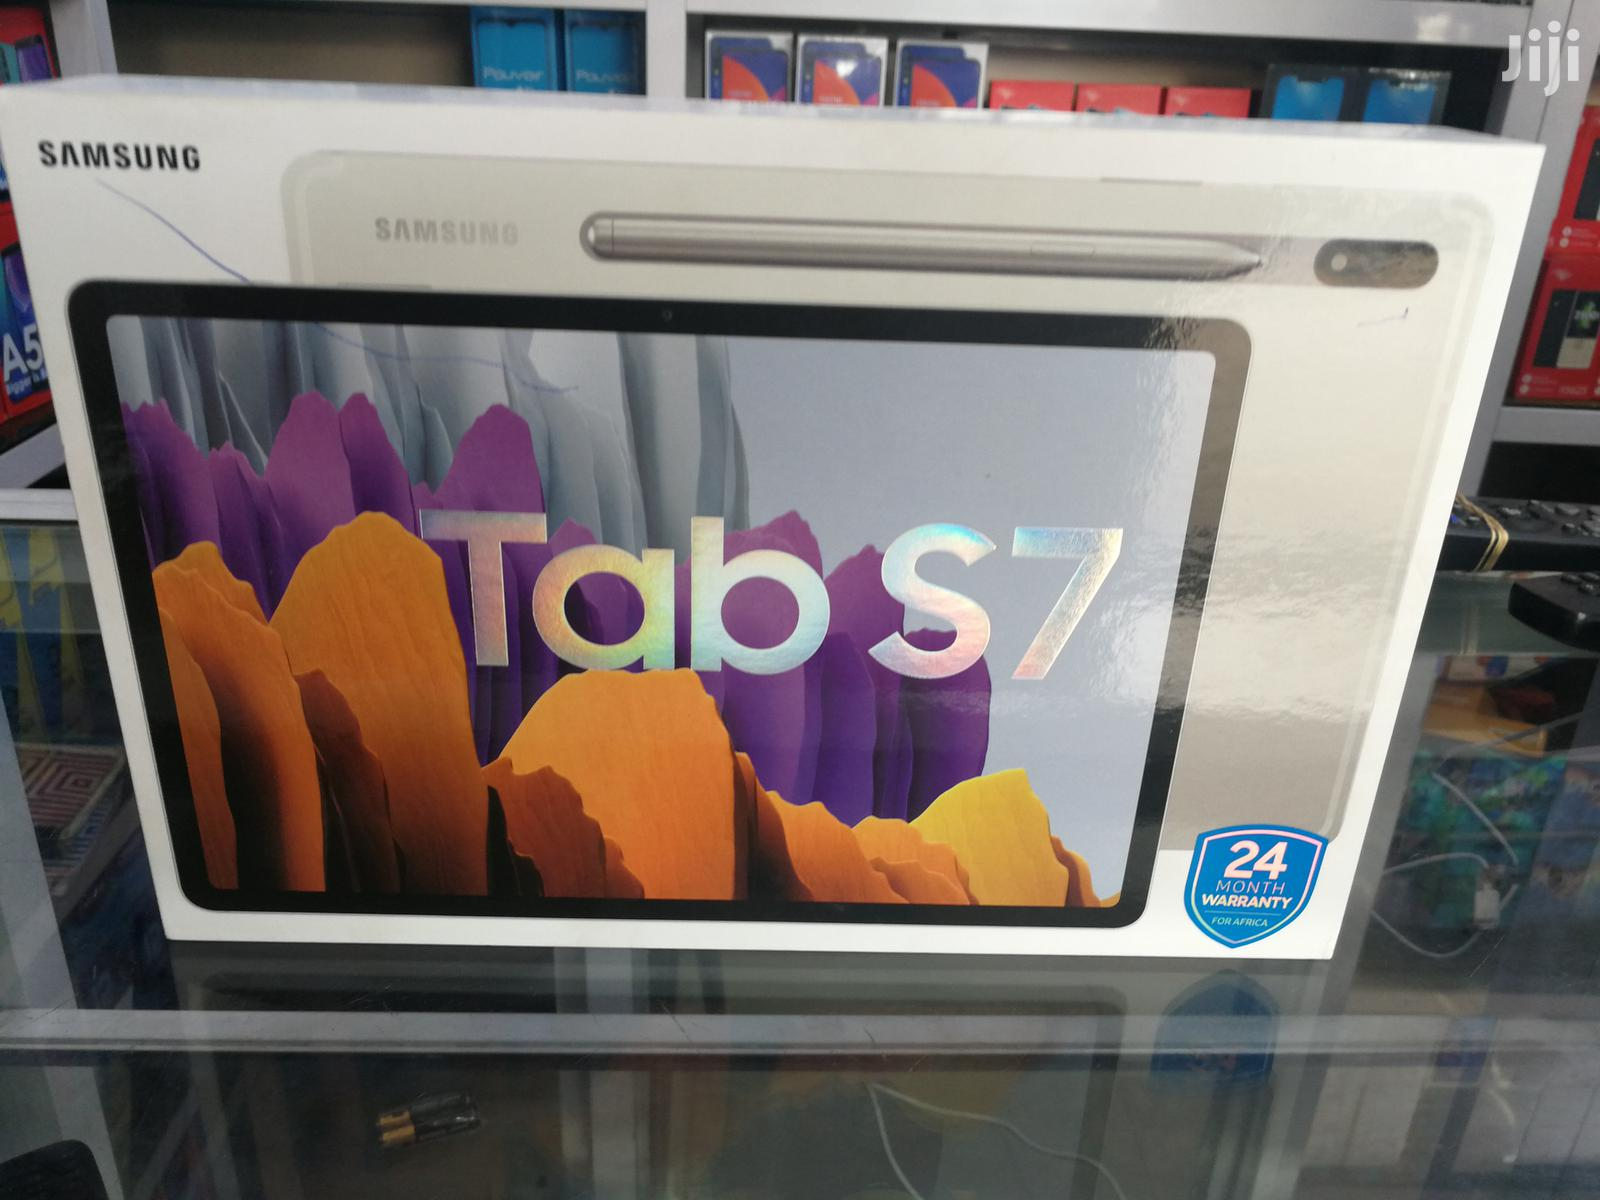 New Samsung Galaxy Tab S7 128 GB | Tablets for sale in Accra Metropolitan, Greater Accra, Ghana